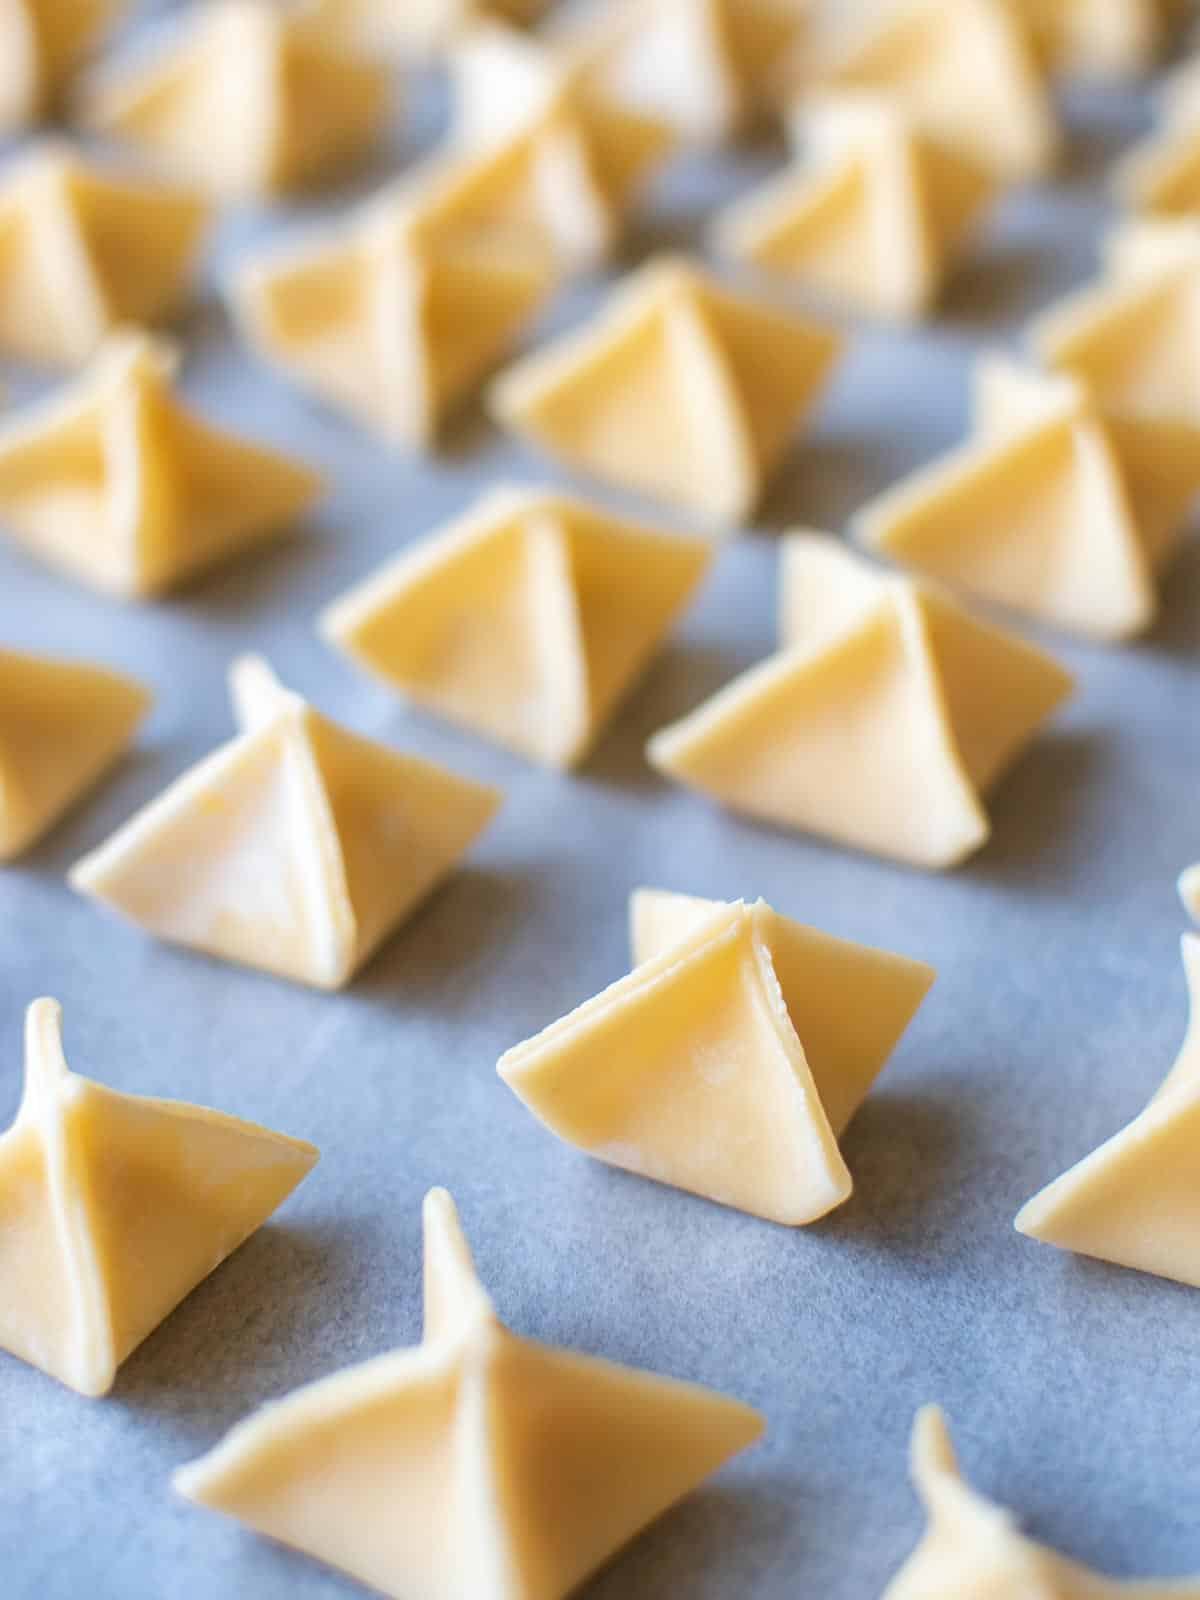 pyramid shaped filled pasta on white baking paper.